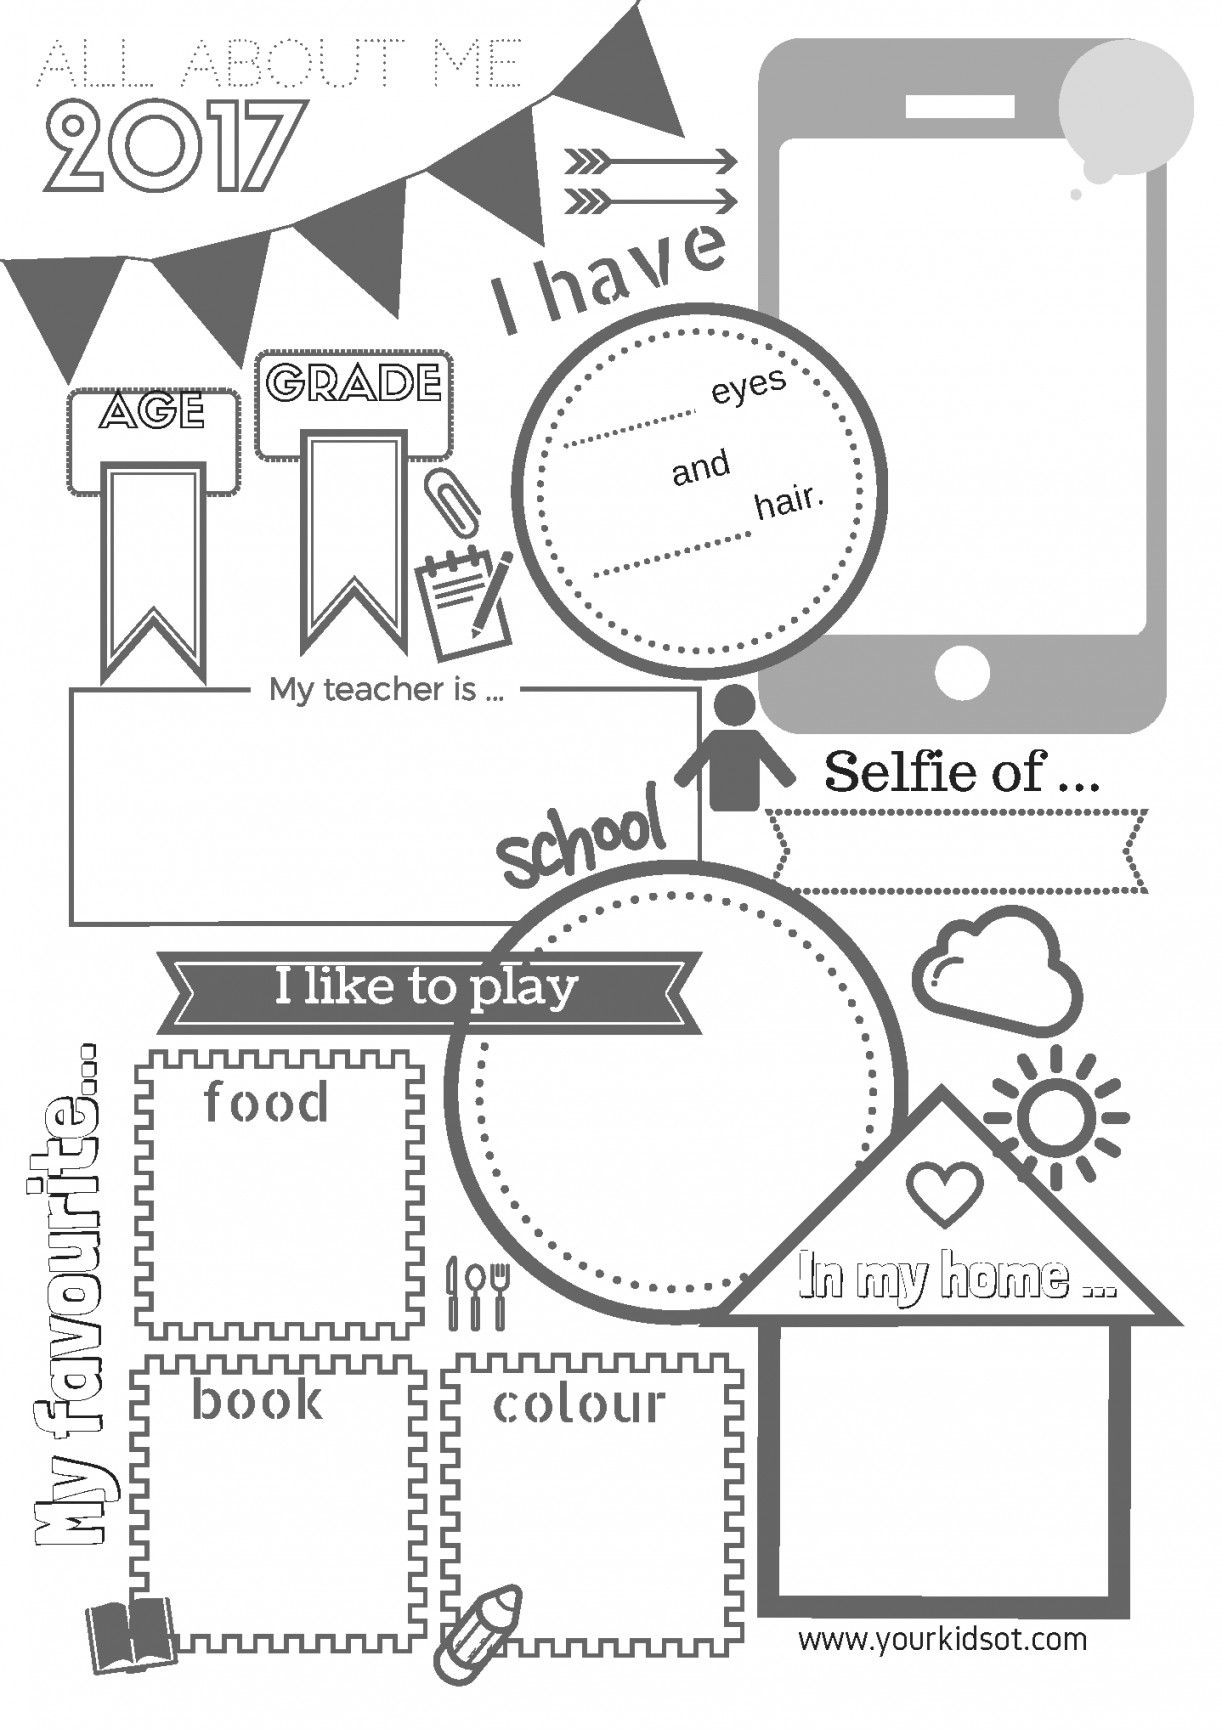 Free Printable All About Me Worksheet   Lostranquillos - All About Me Free Printable